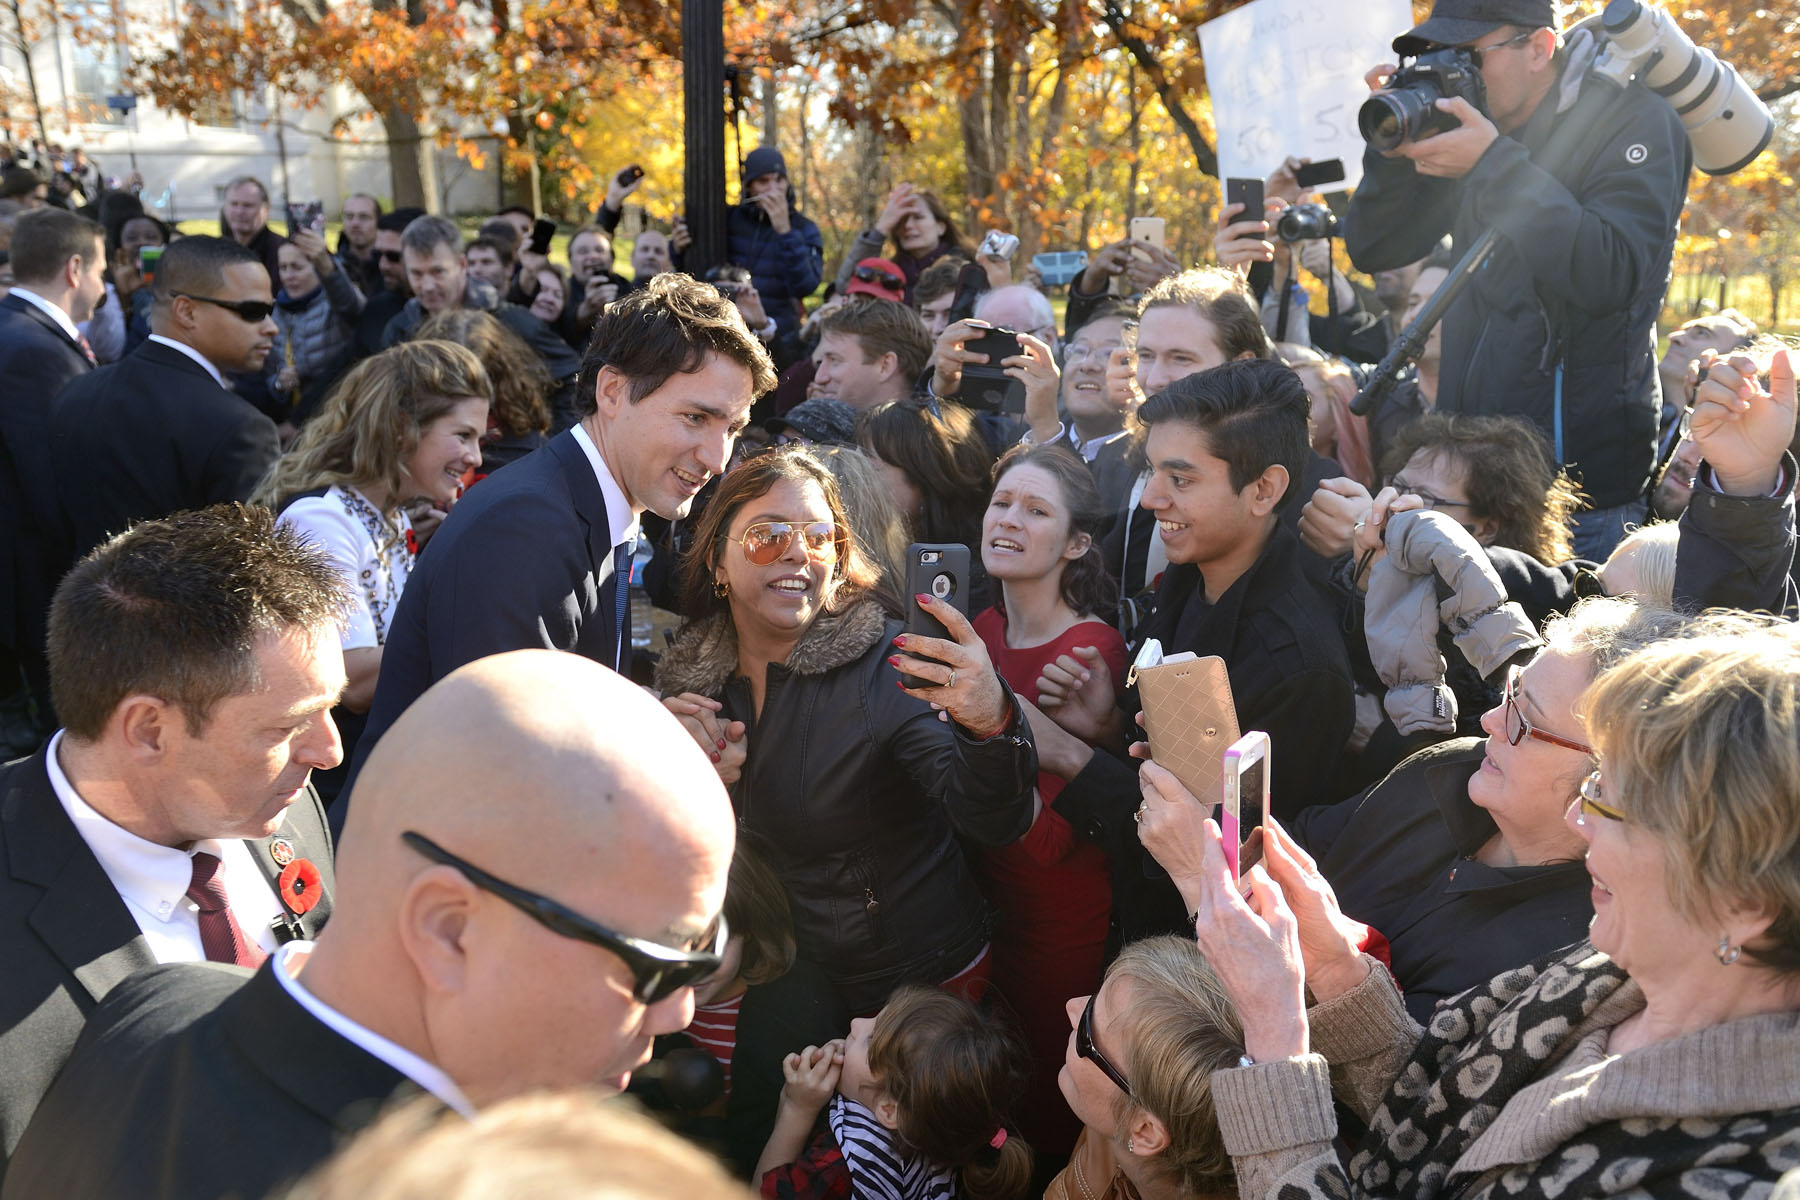 Prime Minister Justin Trudeau and Mrs. Sophie Grégoire-Trudeau mingled with the crowd before their departure.